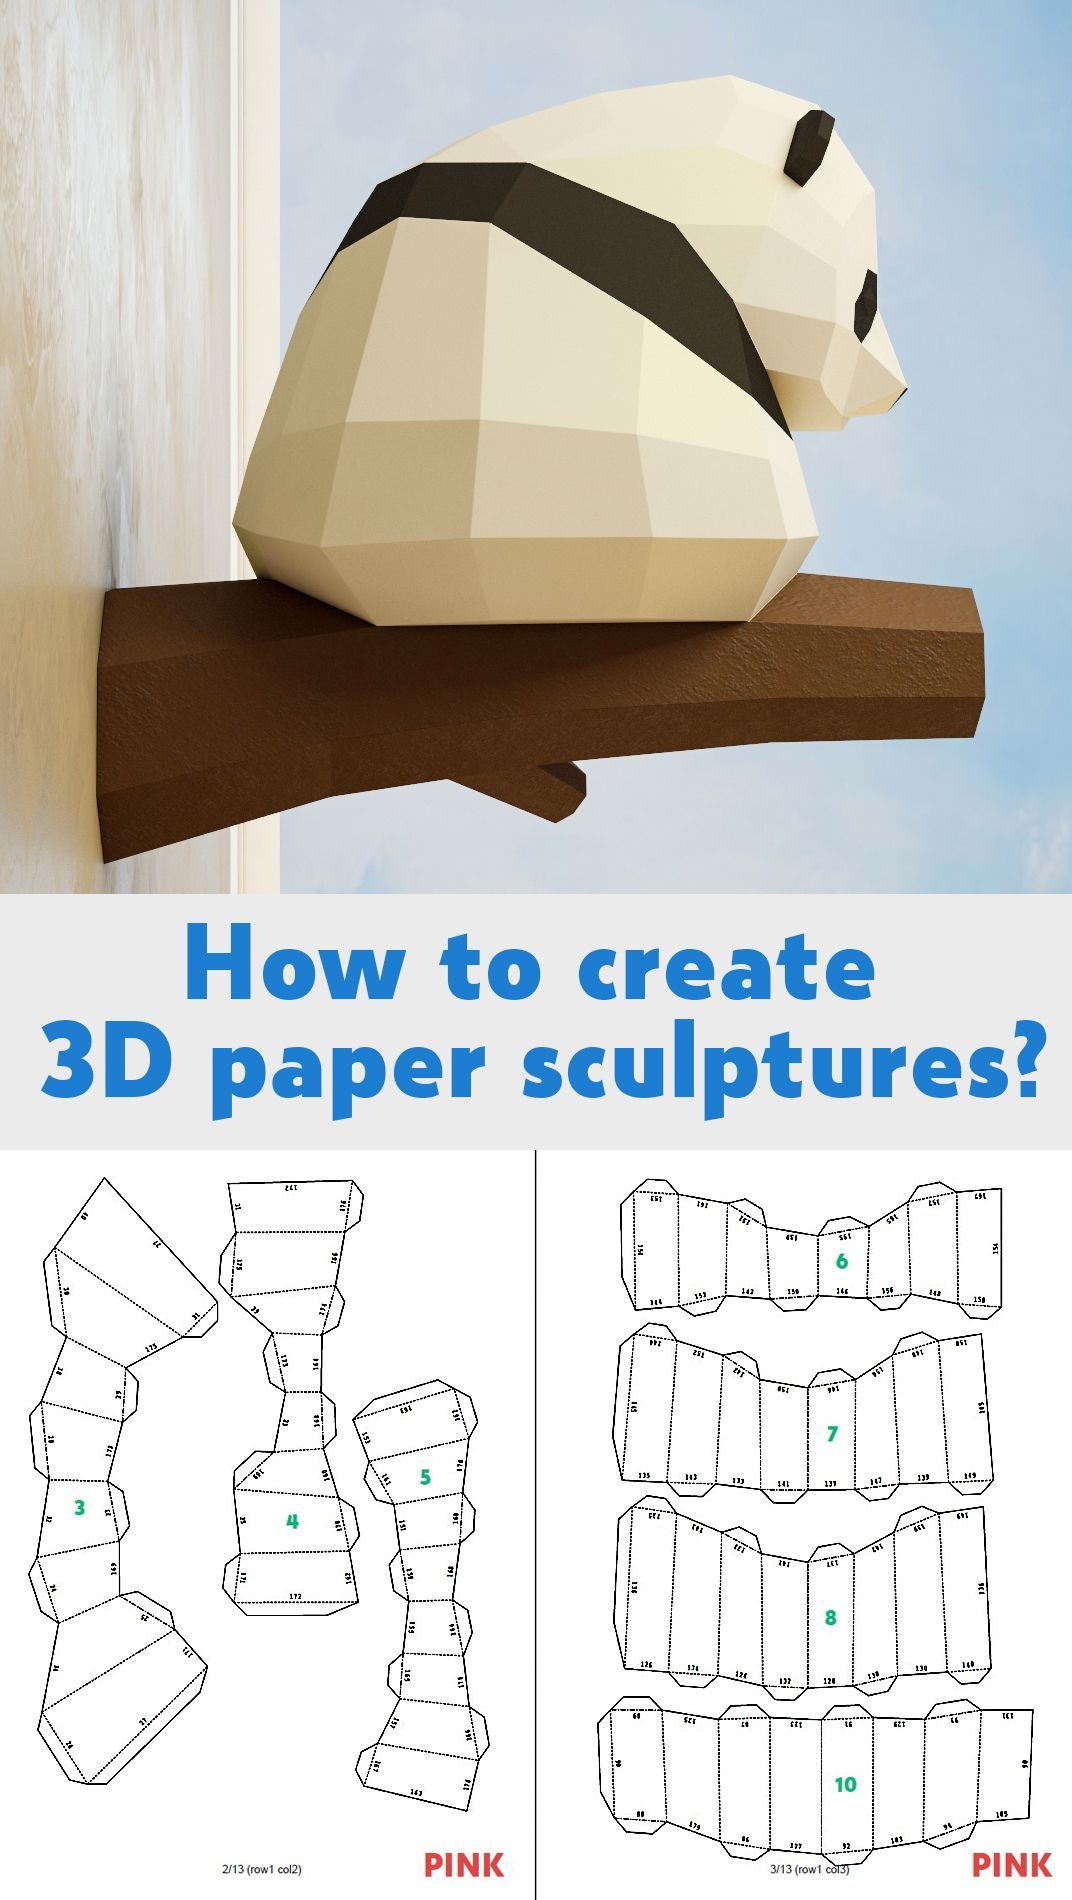 2f9a73d8eb299a6632e61de6810134a9  D Paper Wall Letter Templates And Instructions on